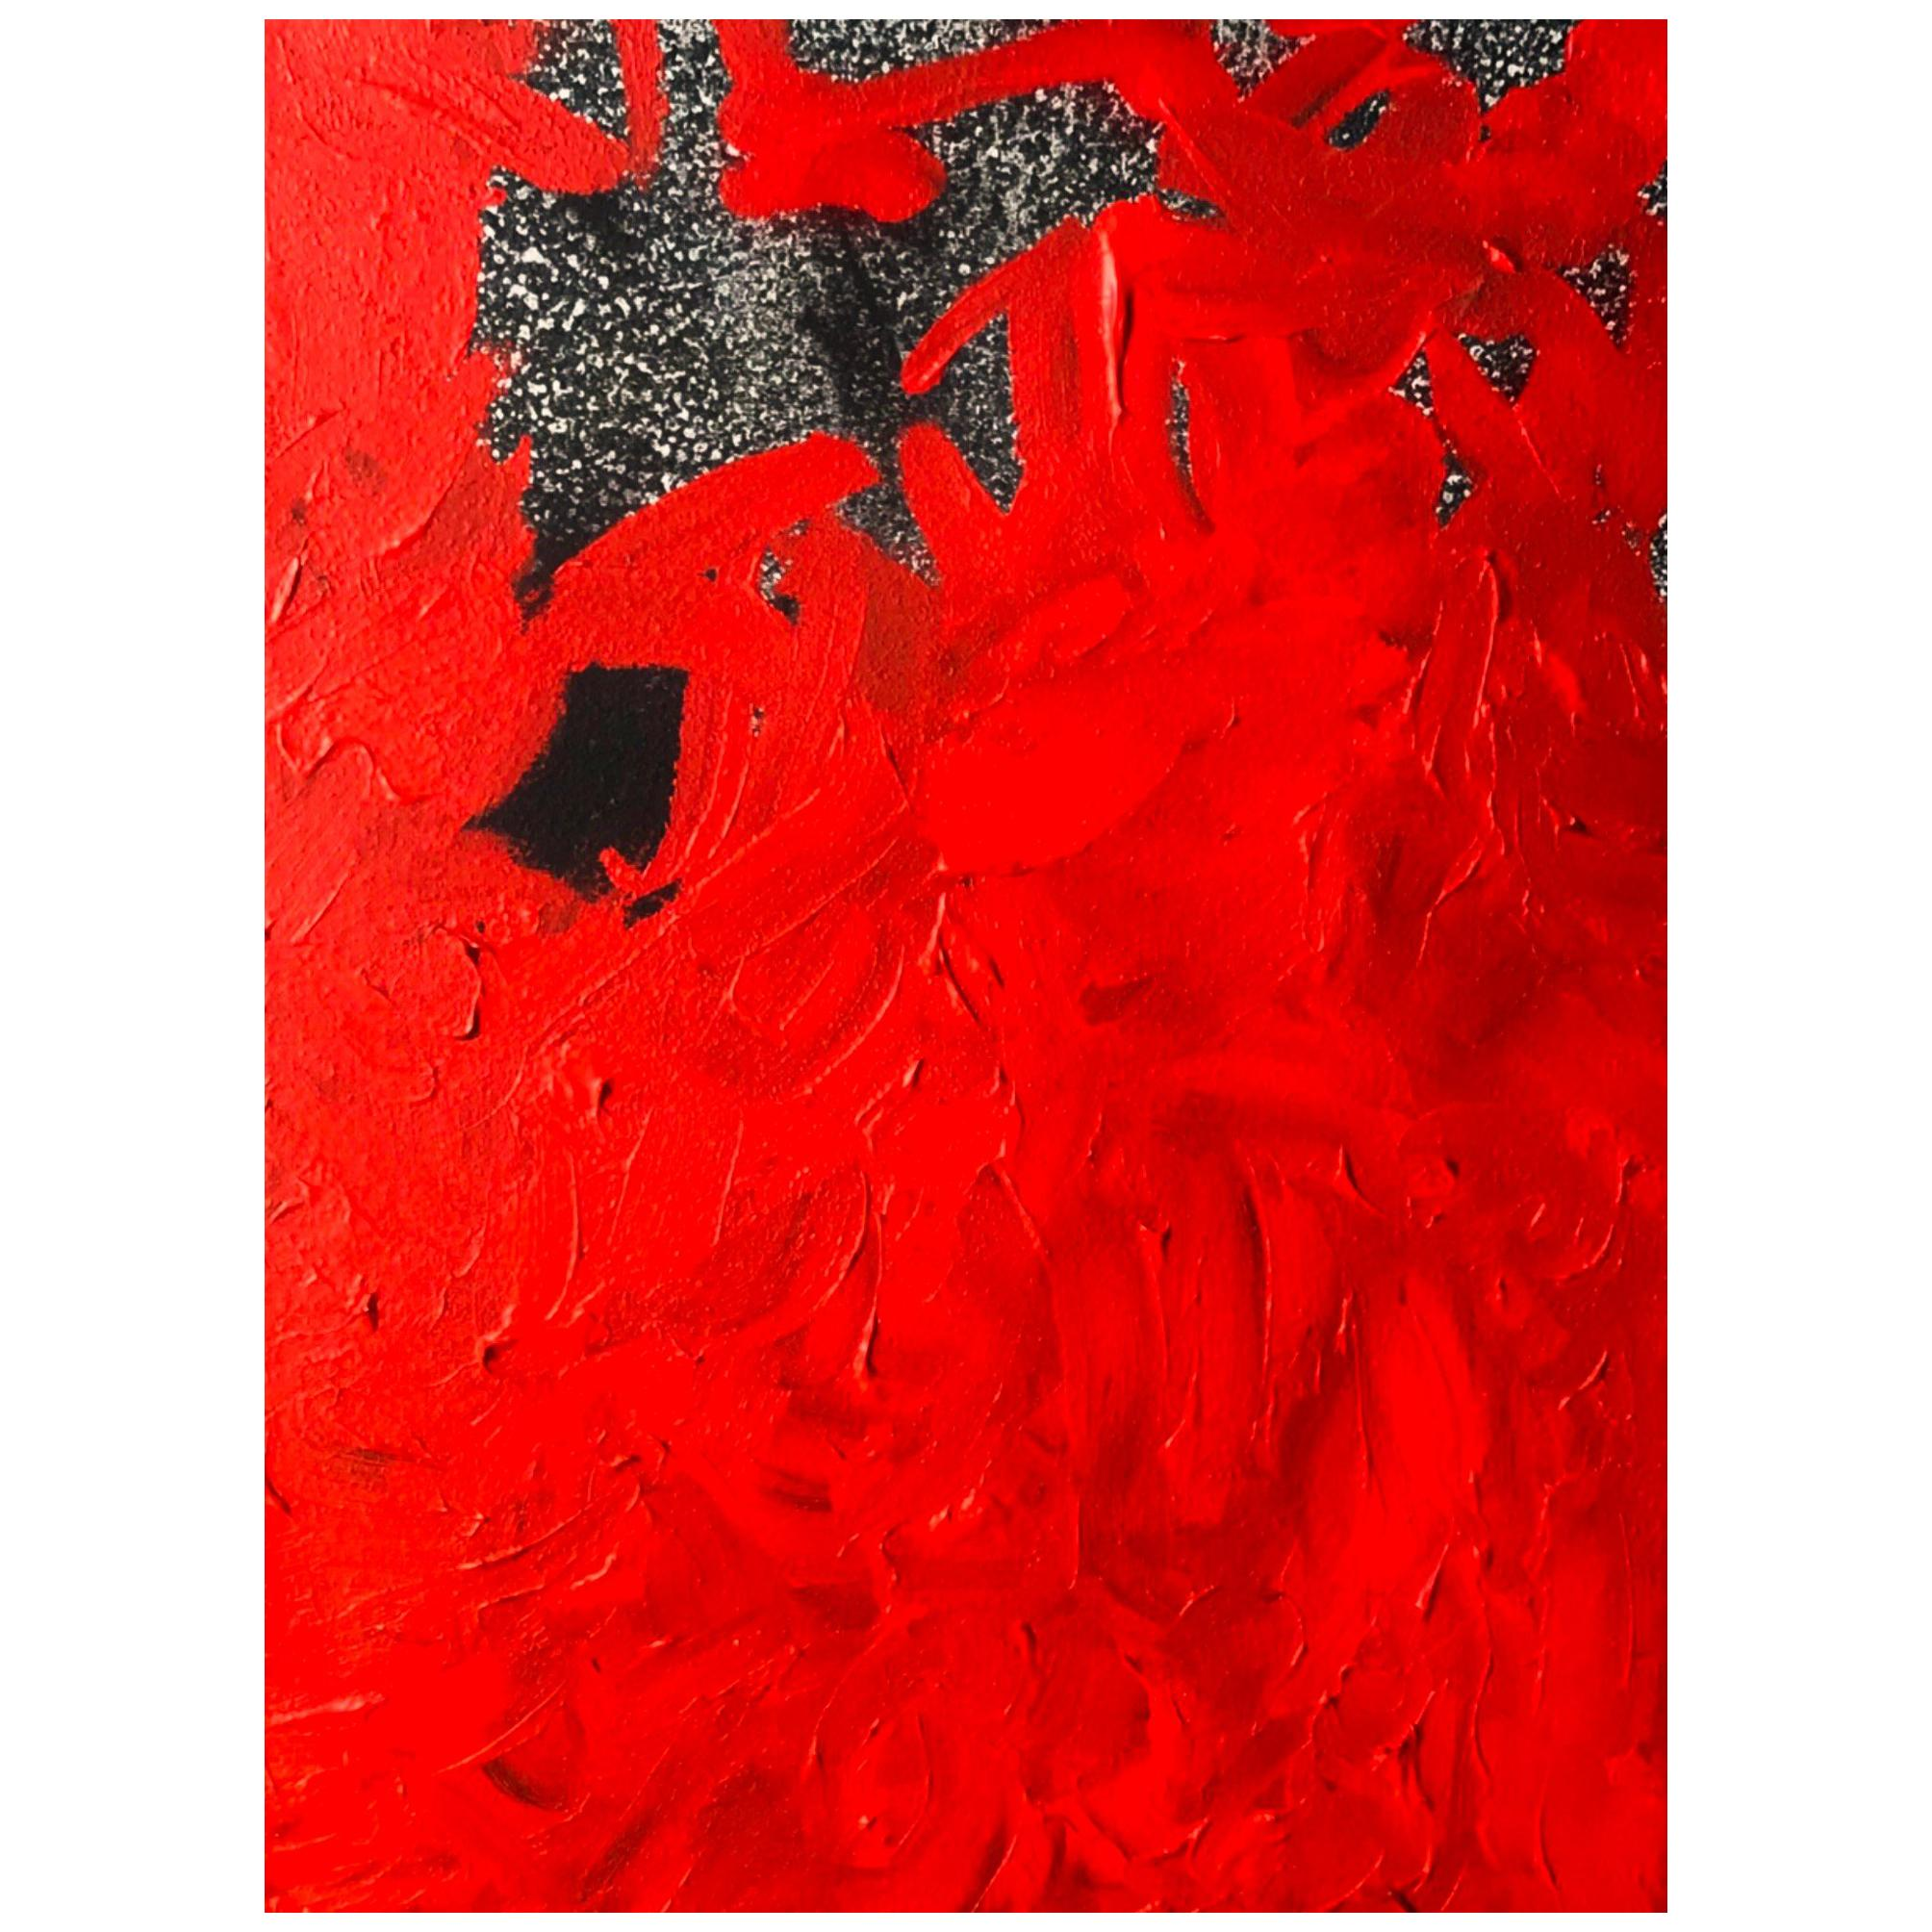 Abstract Color Field Mixed-Media Canvas, Vermillion & Pepper by BT Newton, 2016